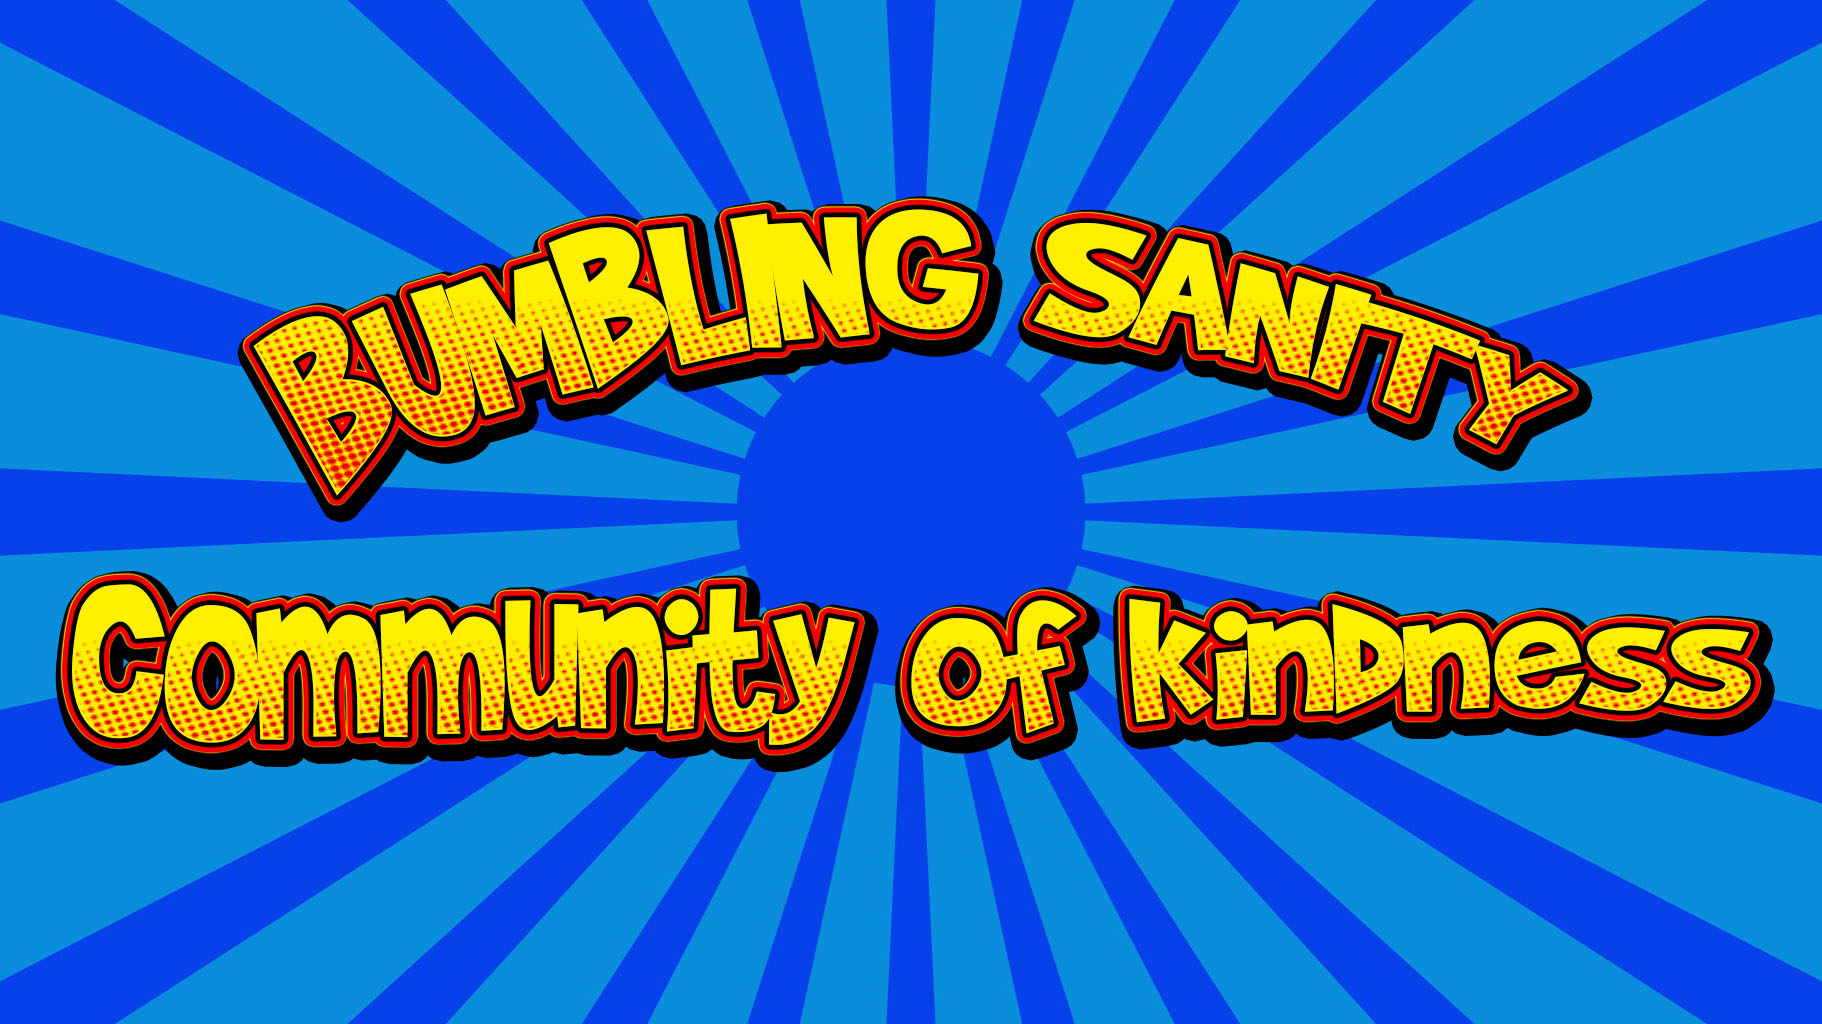 Join our Facebook Group and become champions of kindness